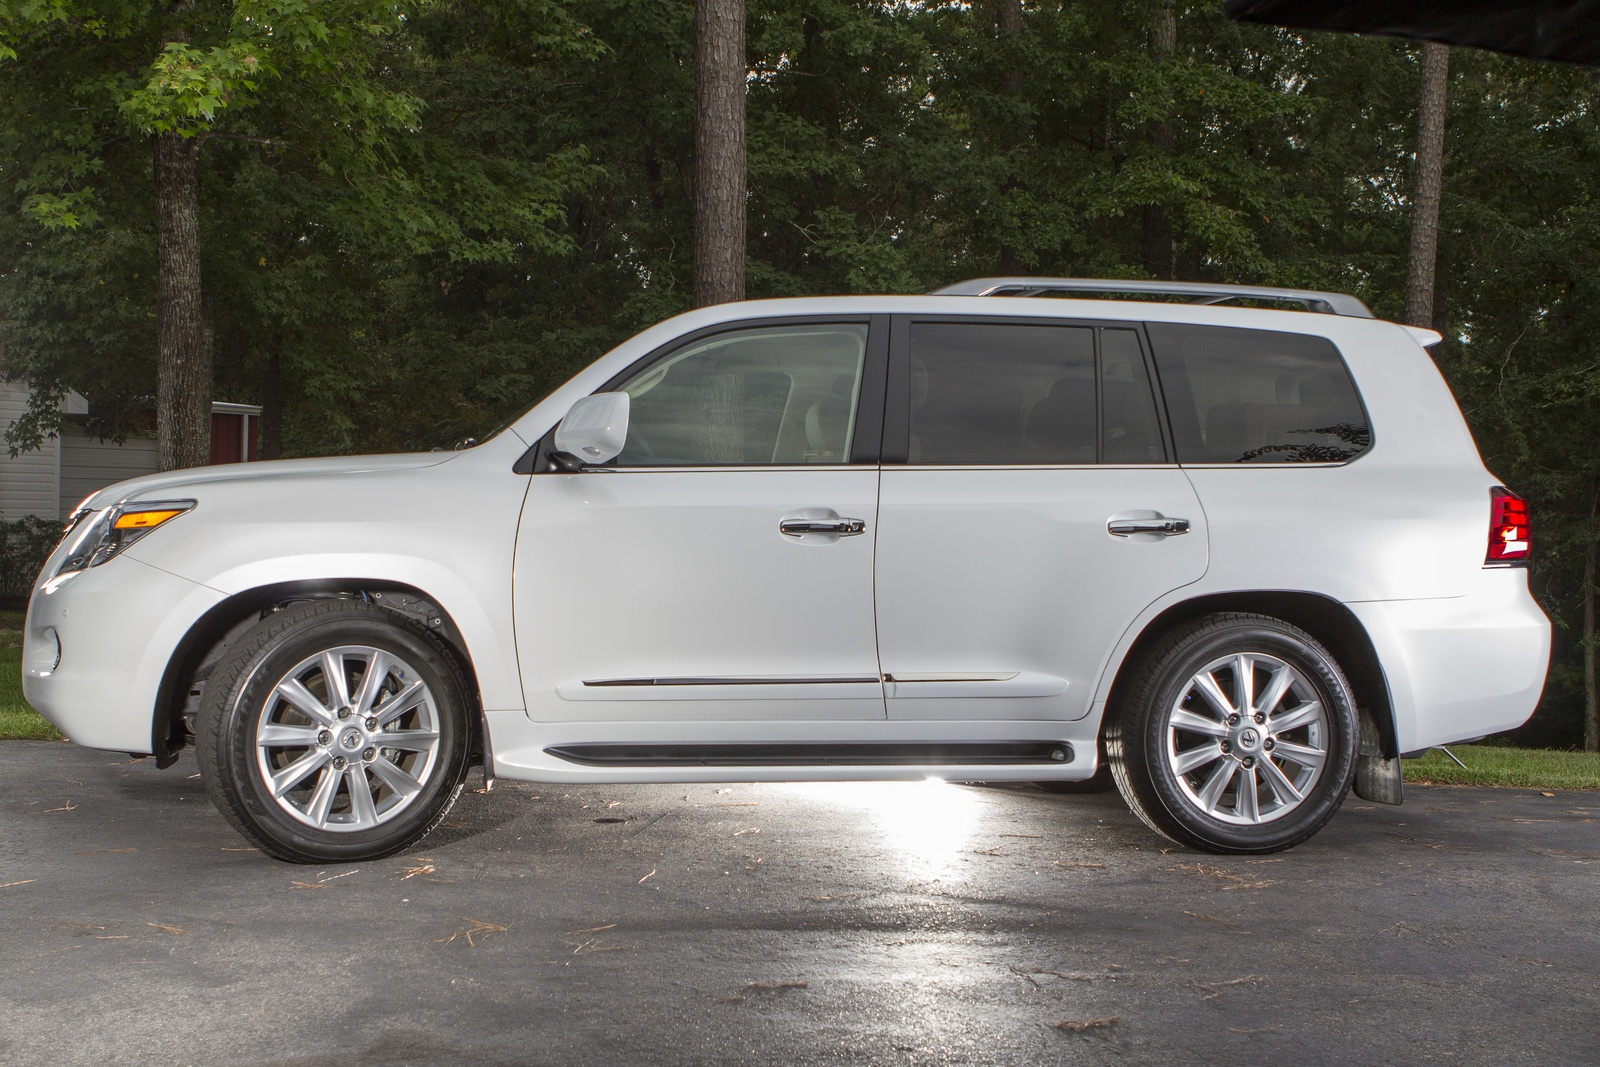 2019 Lexus LX 570 photo - 5